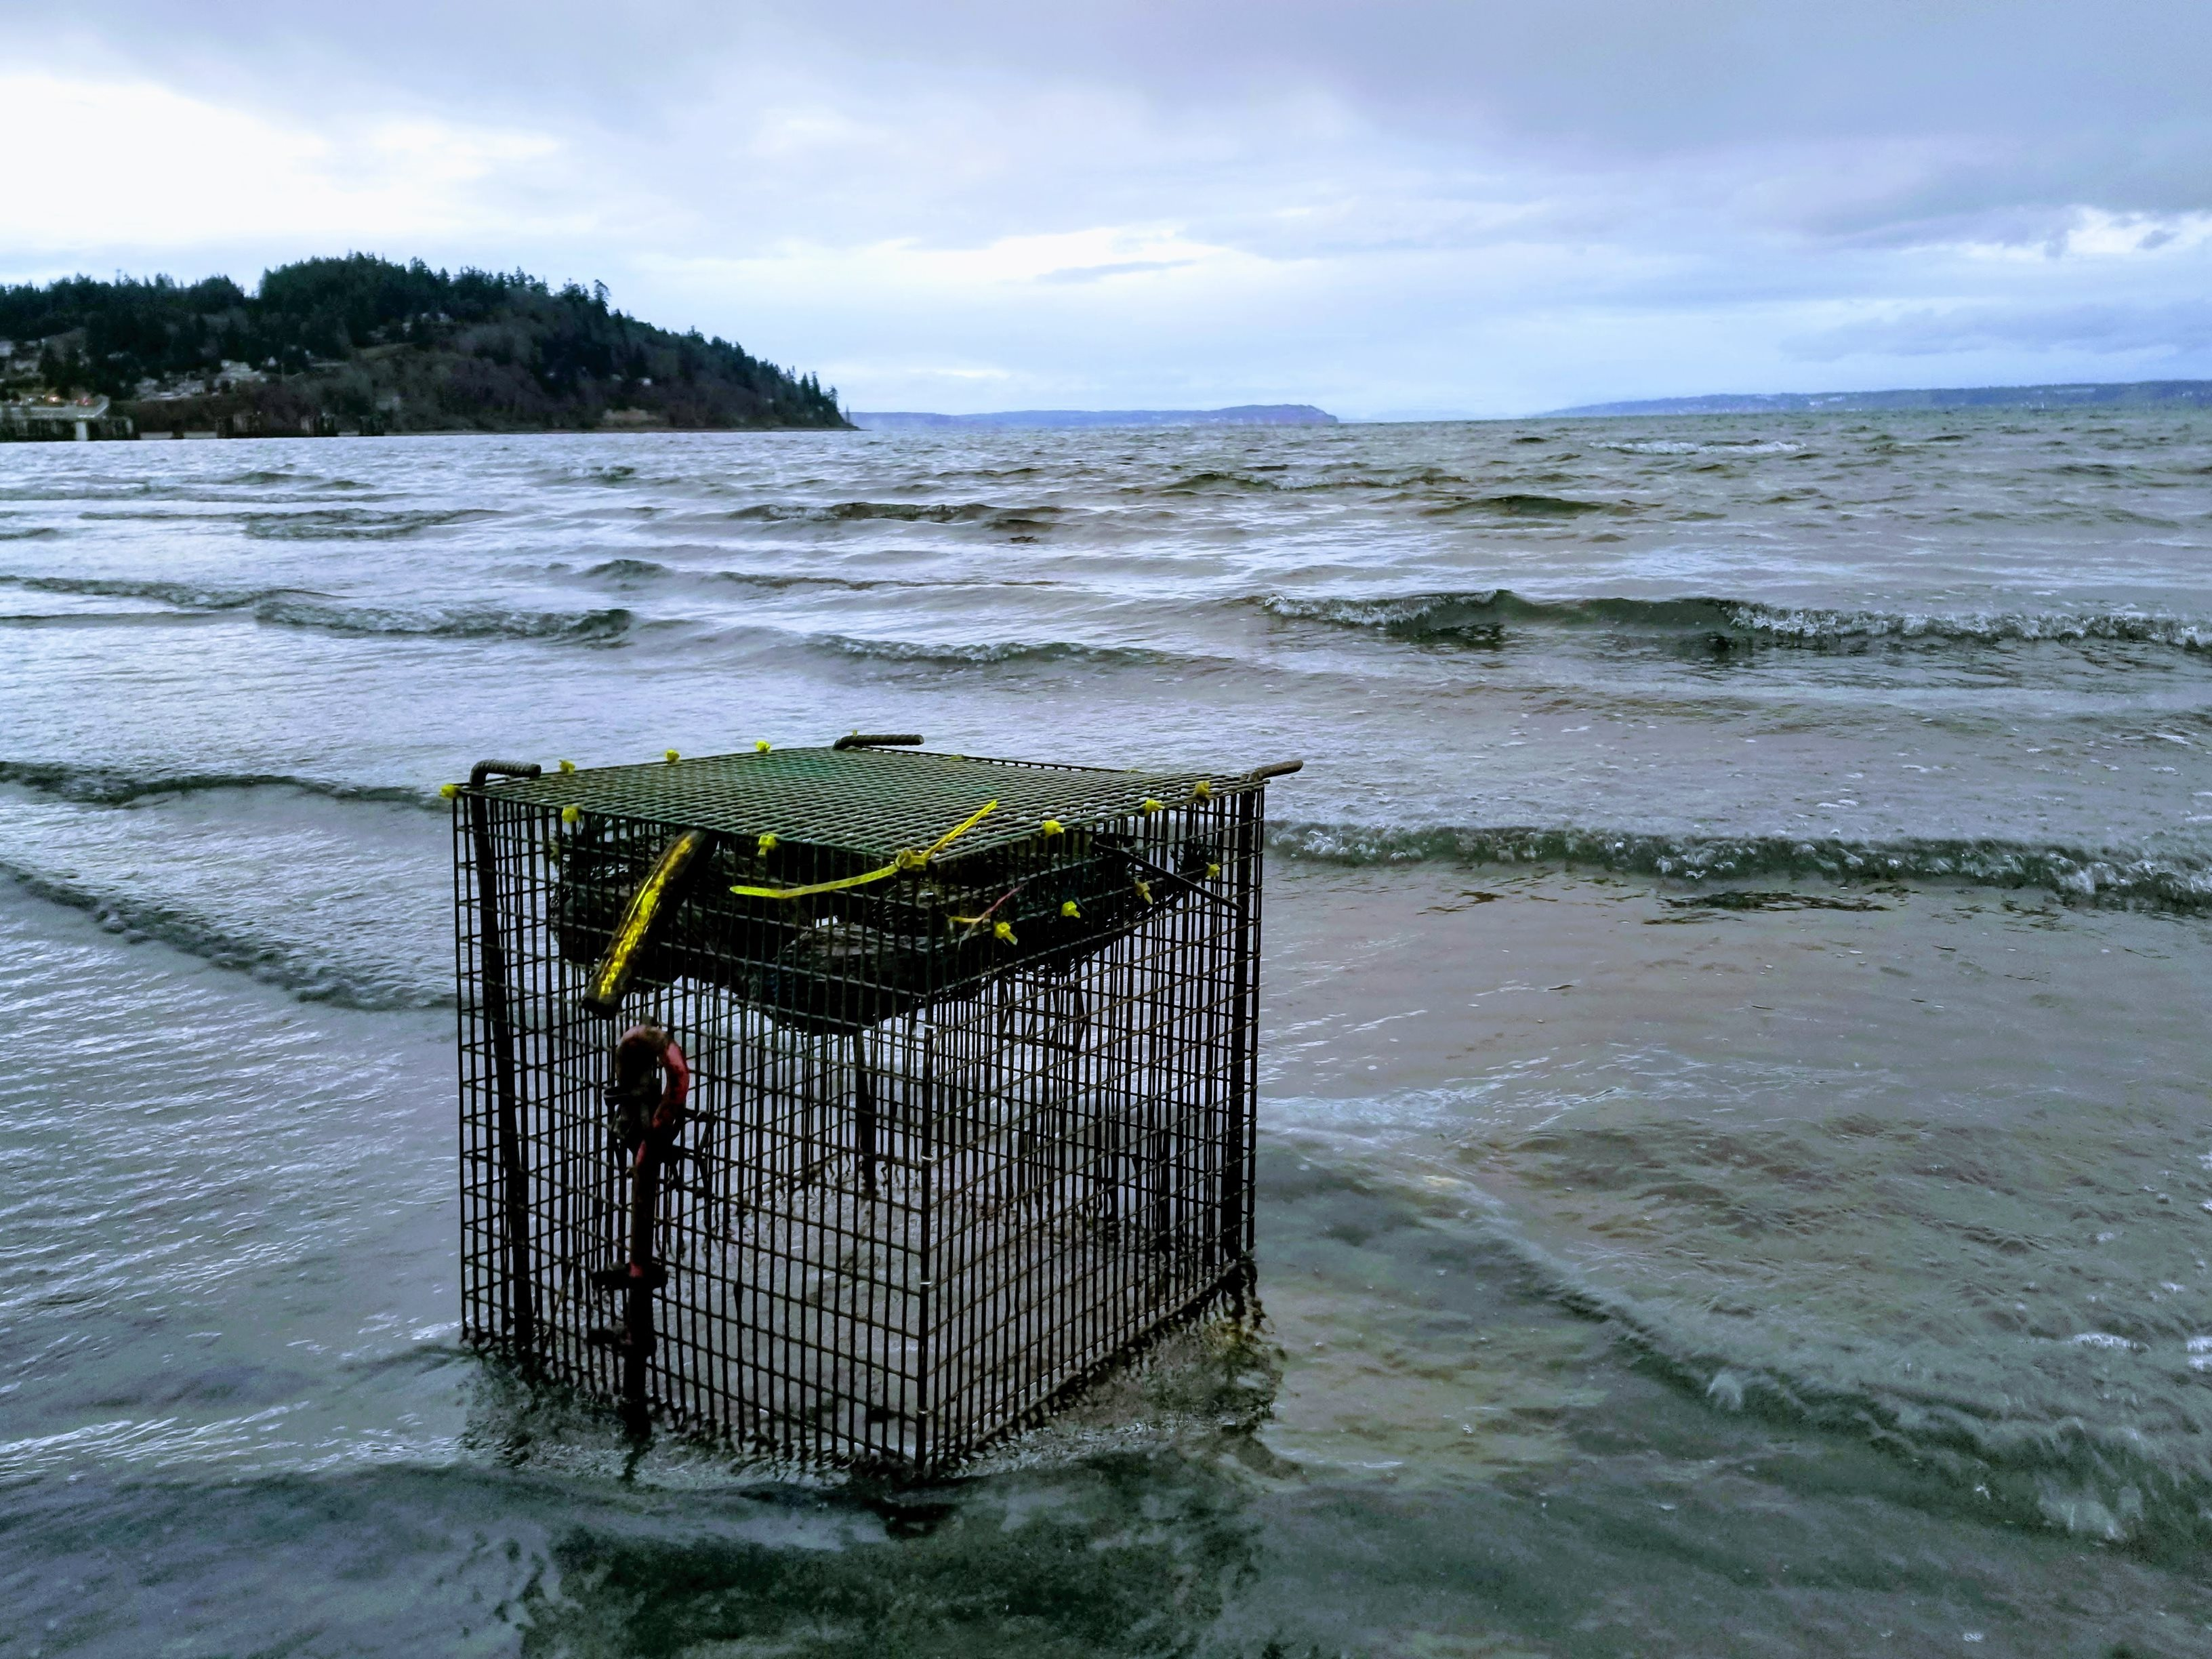 a wire cage with a bag of mussels sitting on a beach for sampling the marine water column.